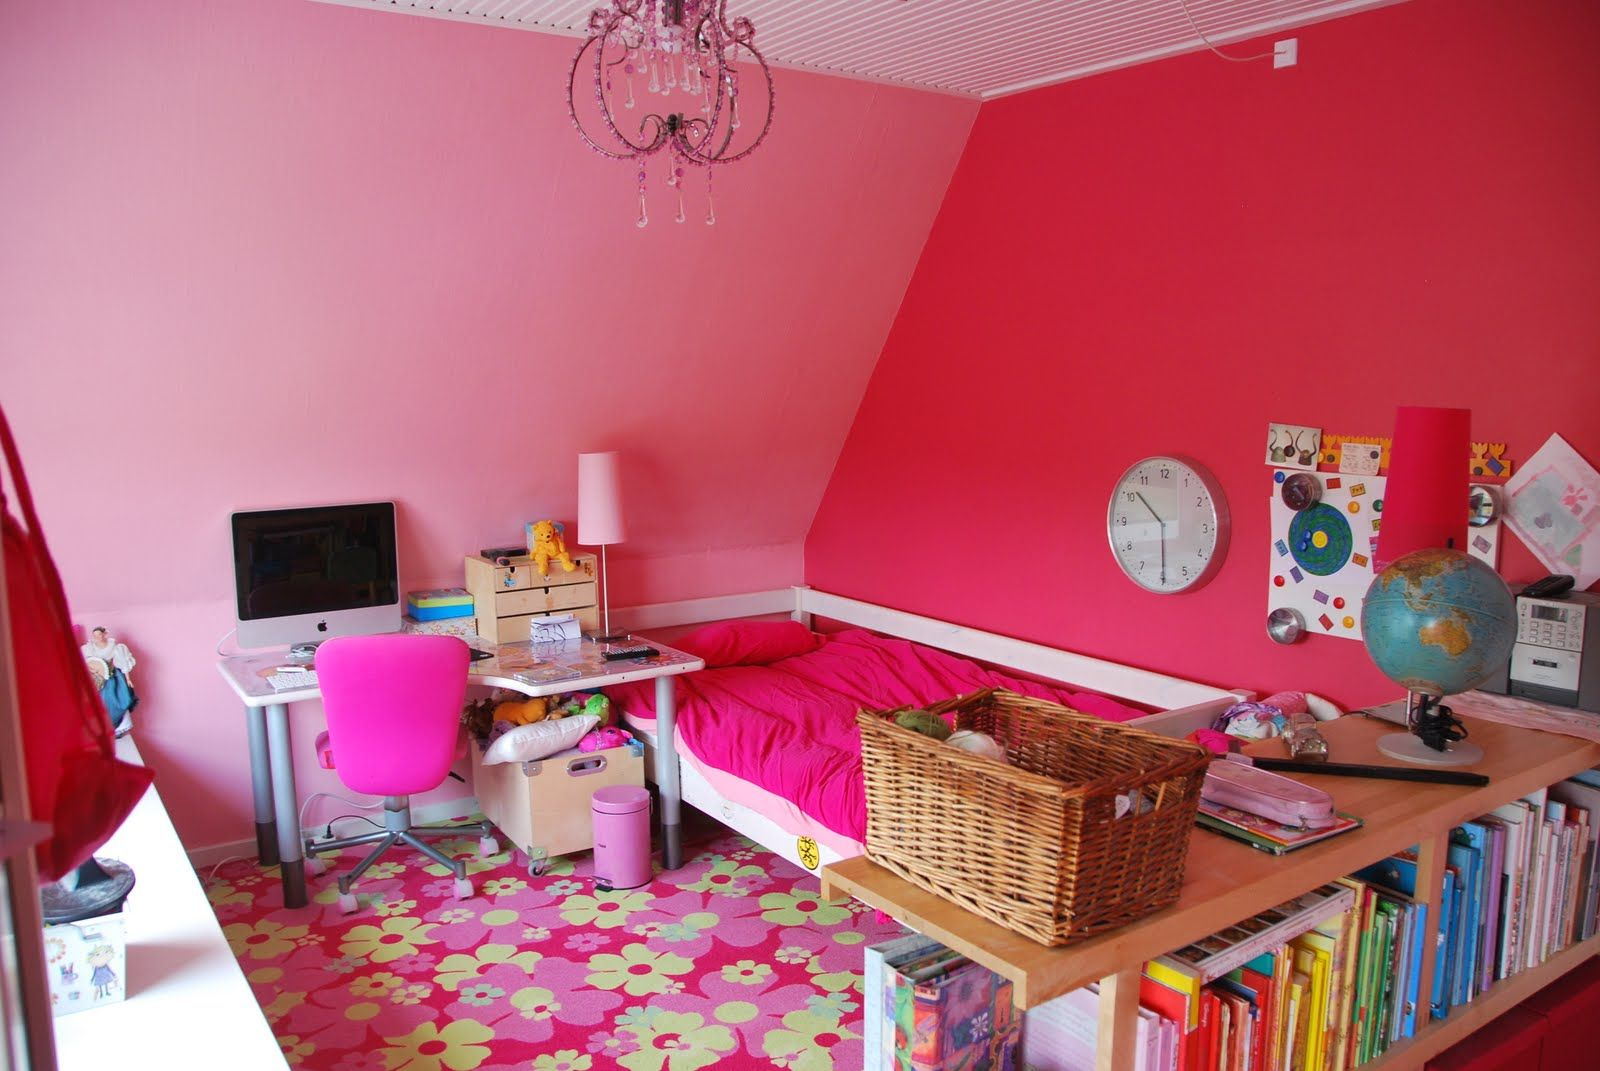 Stuff For Room Decor Pleasant Pink Themes Design Room For Teenage Girls With